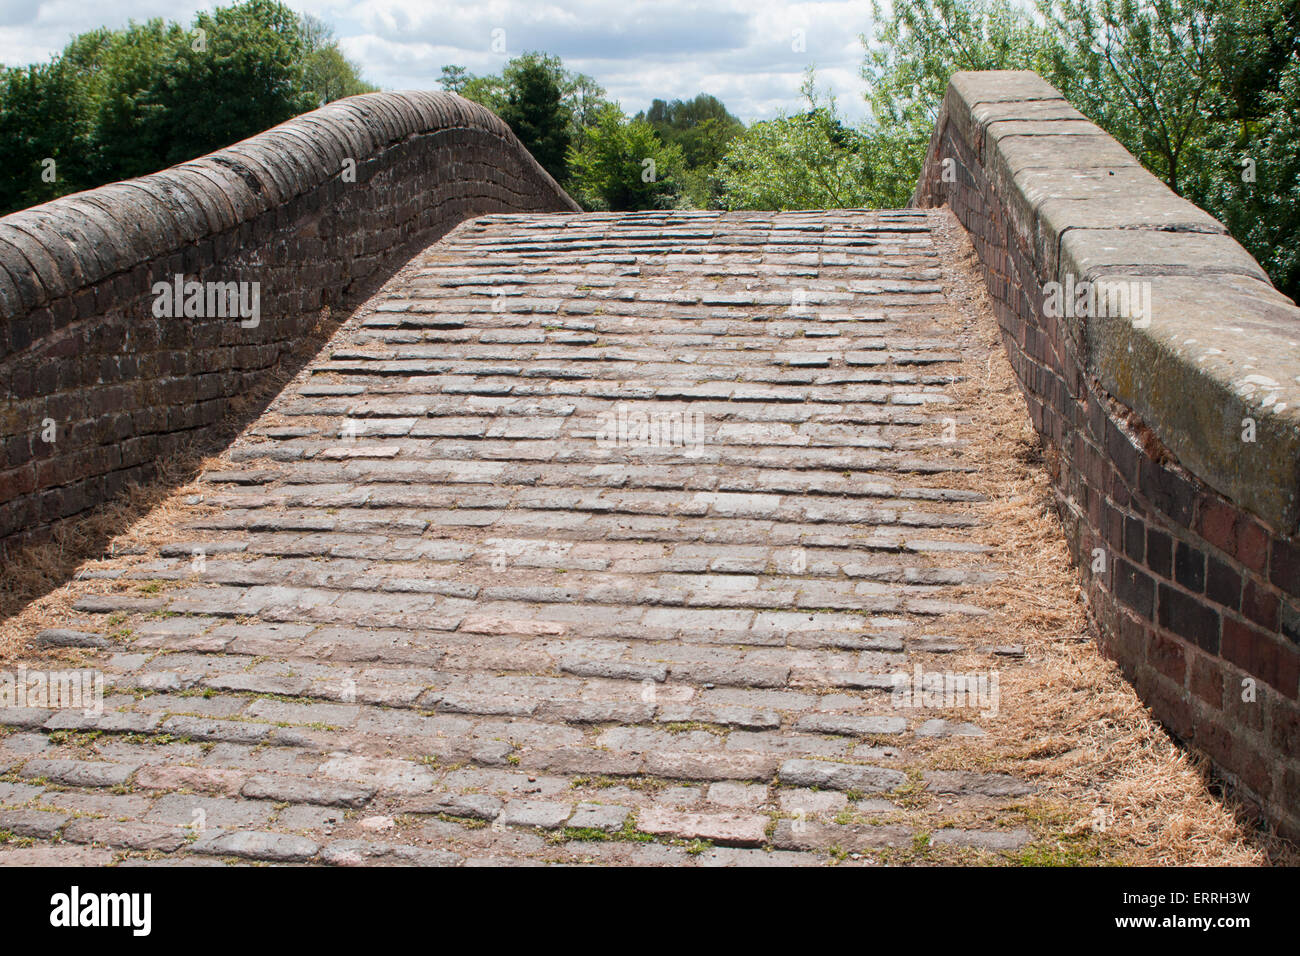 Stone cobbled canal towpath bridge at Heywood Junction, Great Heywood, Staffordshire, UK. - Stock Image